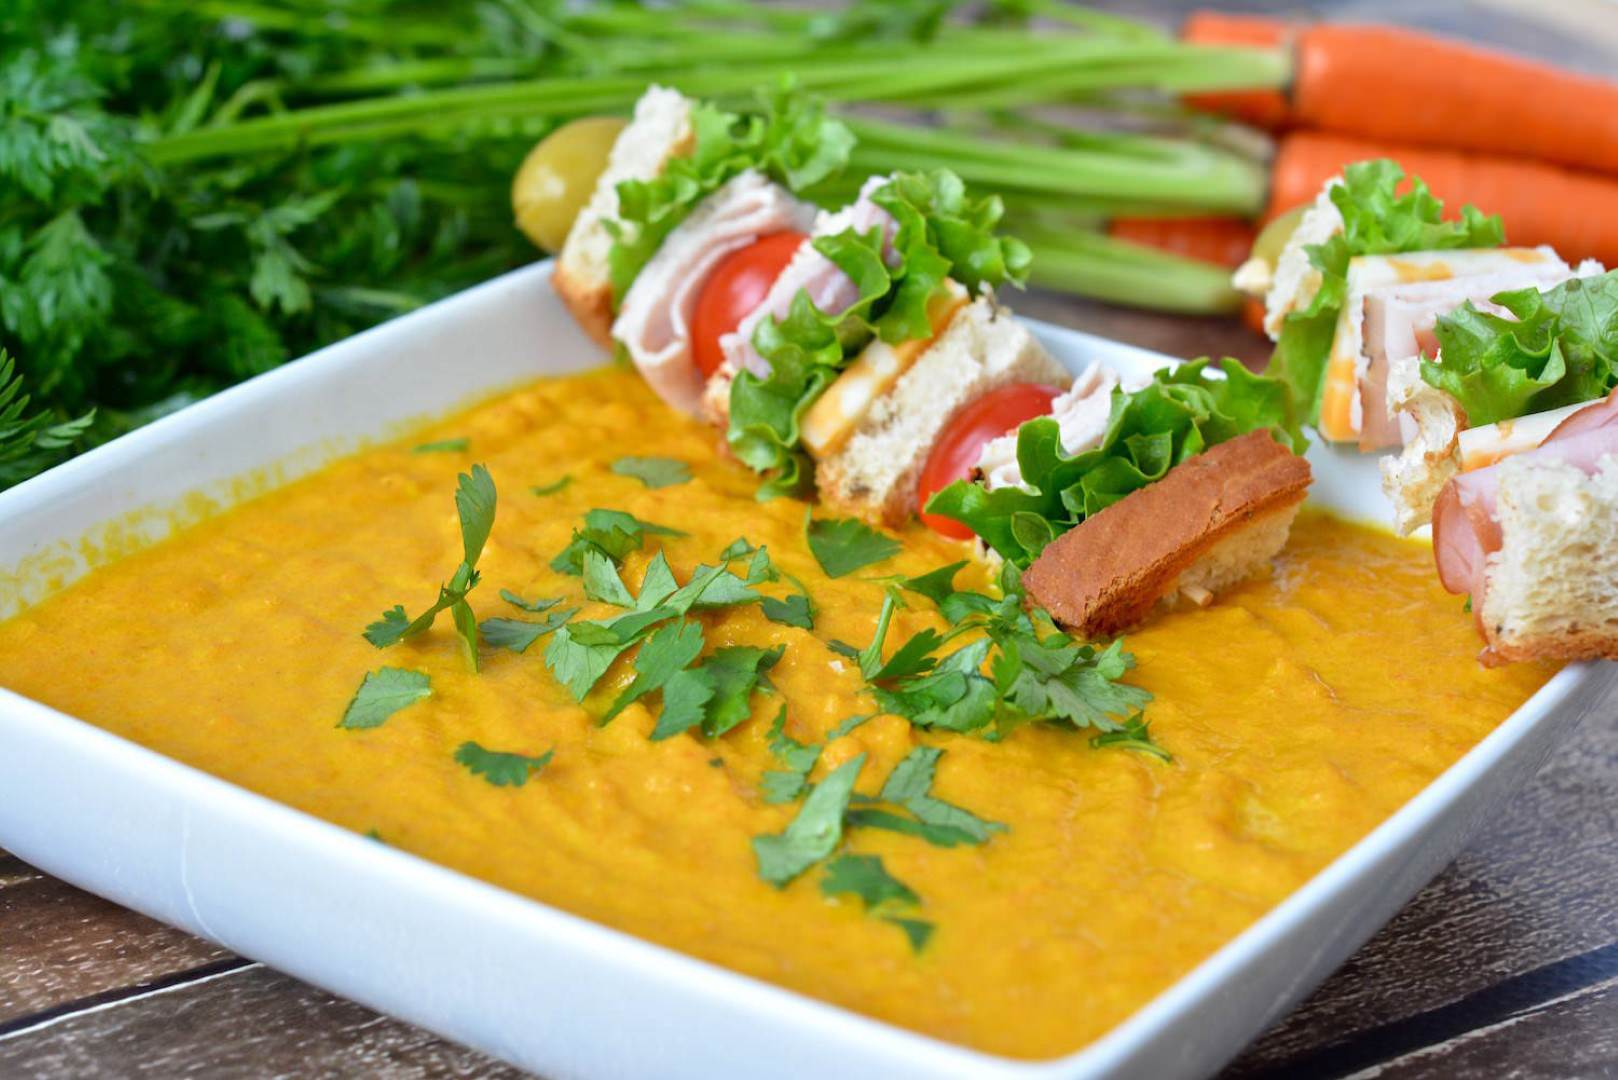 Three Bakers Curried Carrot Soup w:Club Sandwich Skewers 4